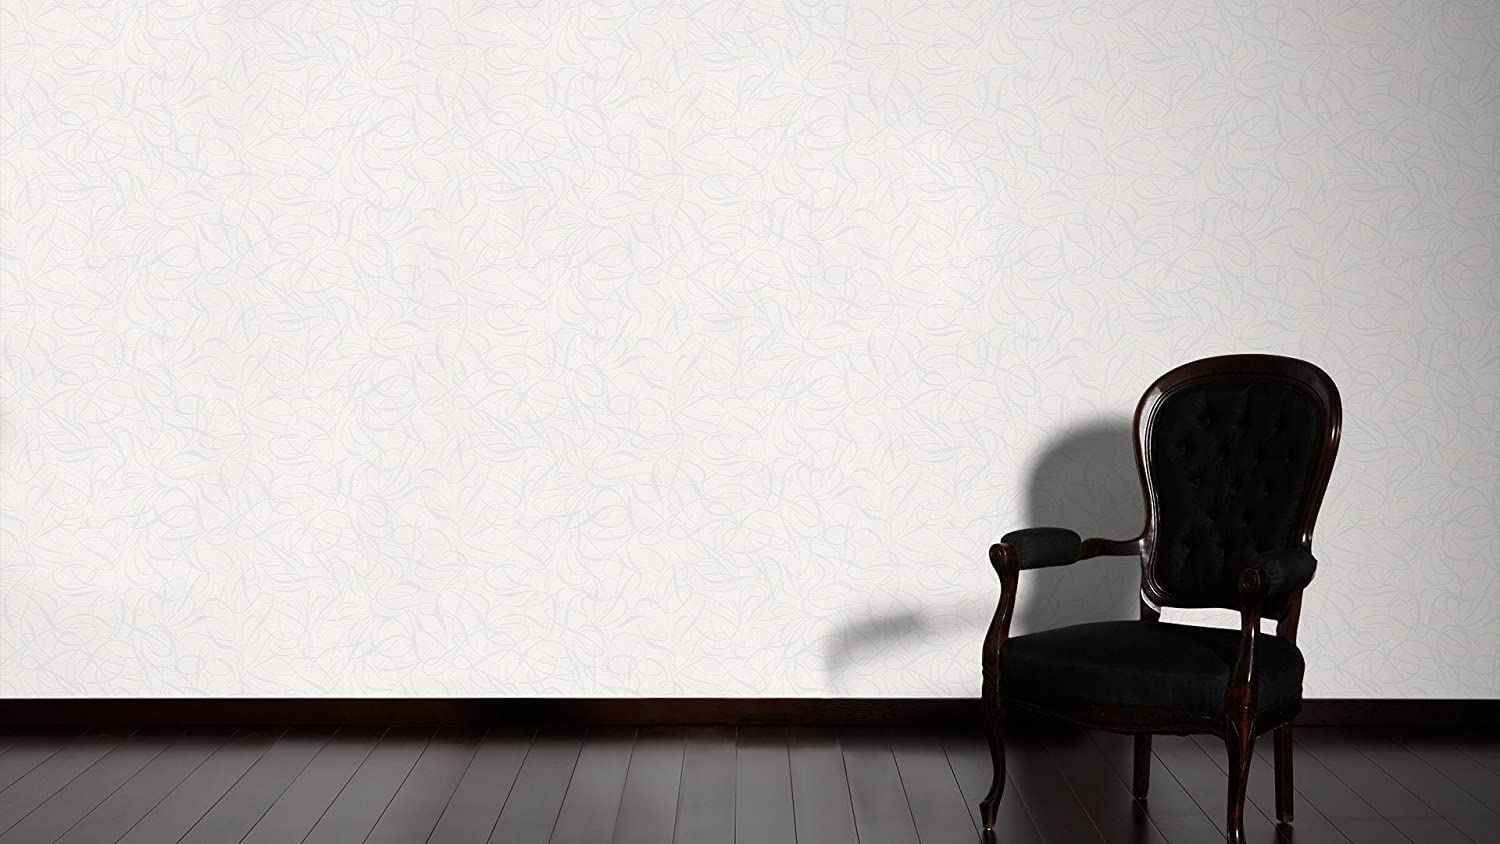 Cr/éation Vliestapete Simply White Tapete grafisch 10,05 m x 0,53 m metallic wei/ß Made in Germany 132055 1320-55 A.S